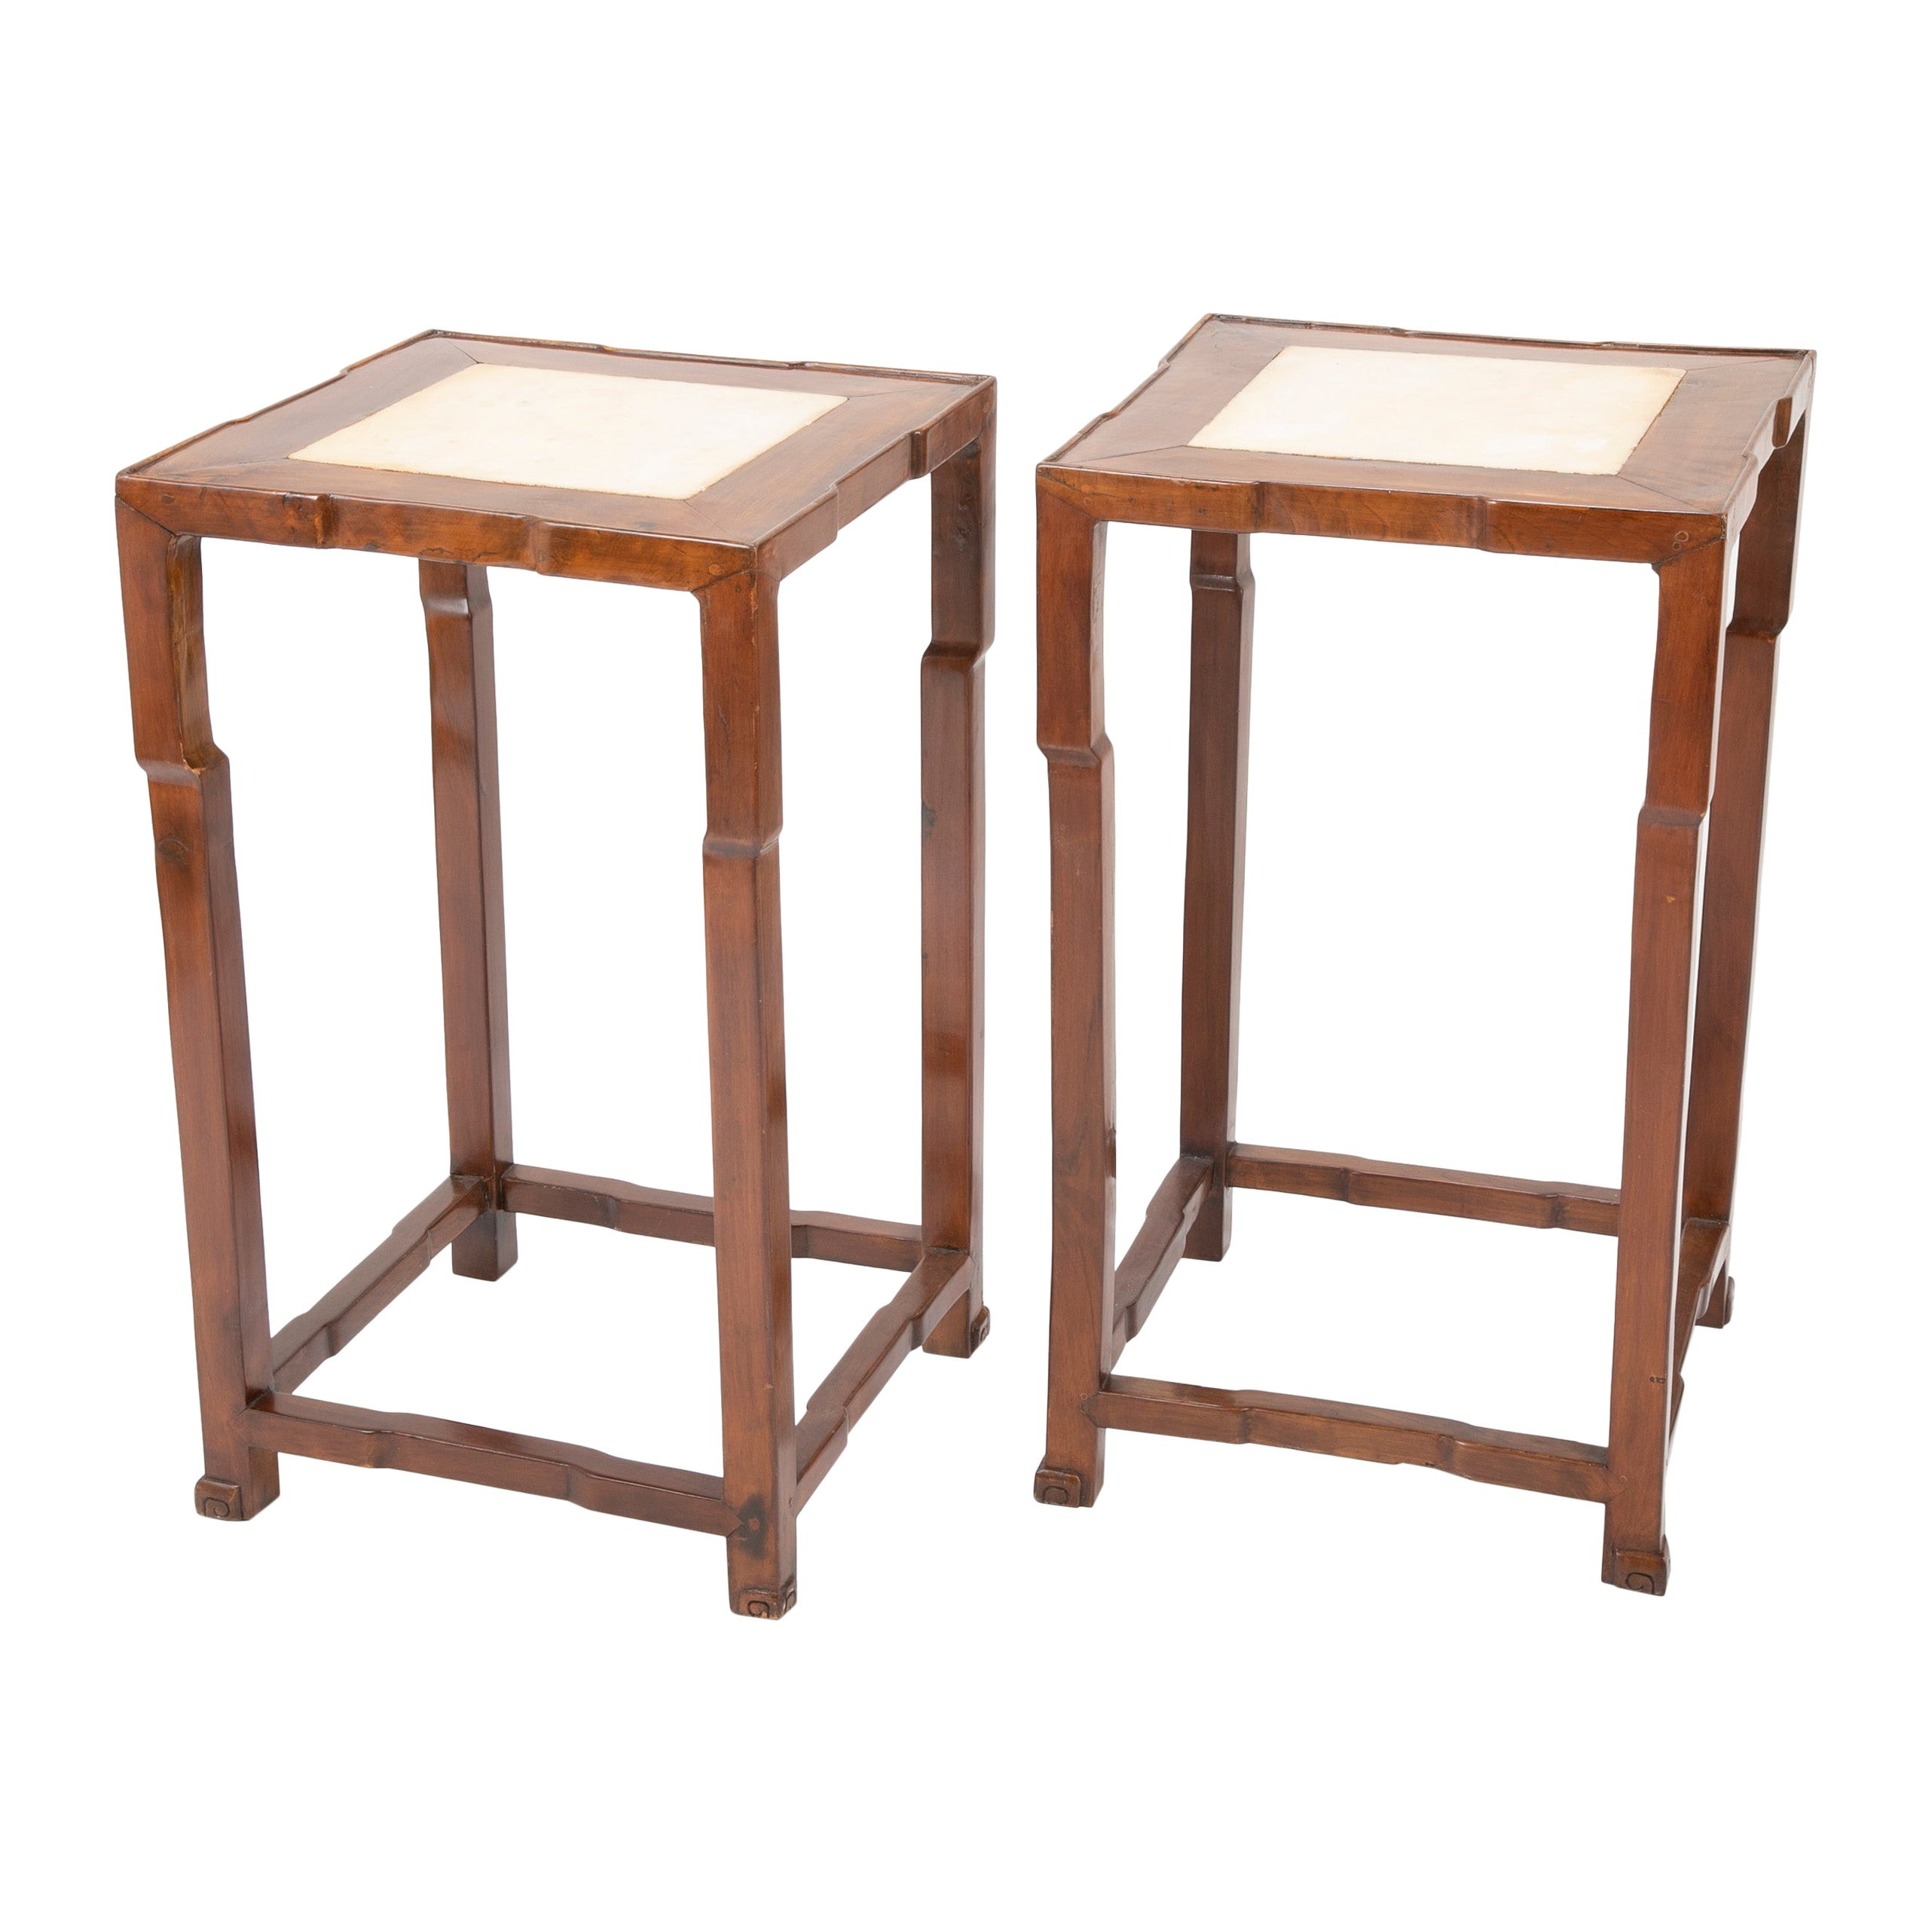 Pair of Chinese Elm Wood Side Tables with Marble Inlaid Tops